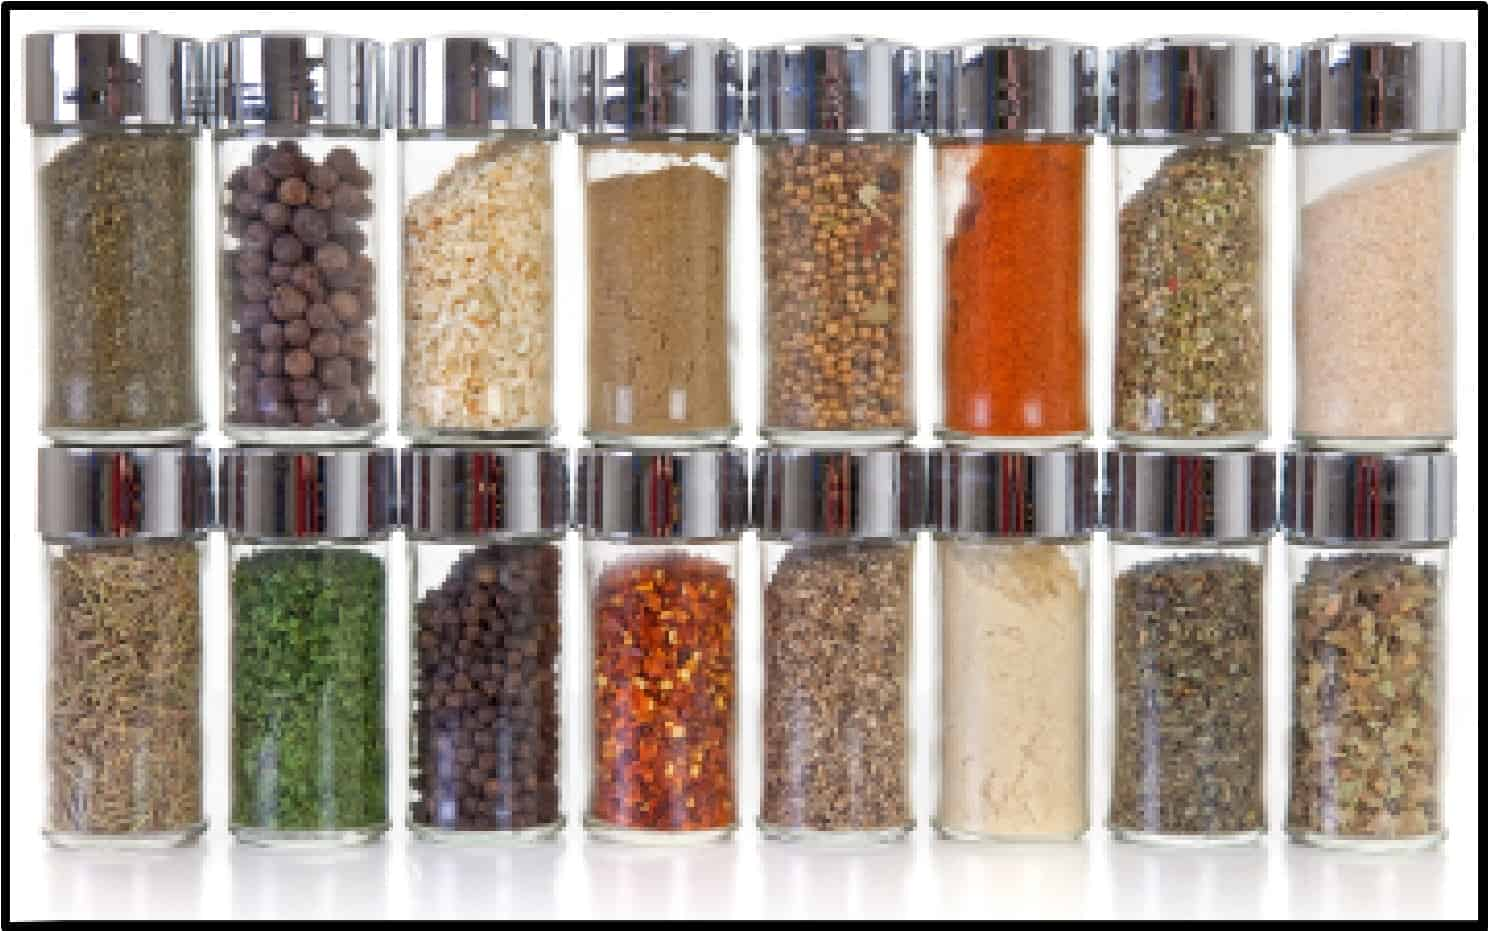 The Healthiest Herbs and Spices